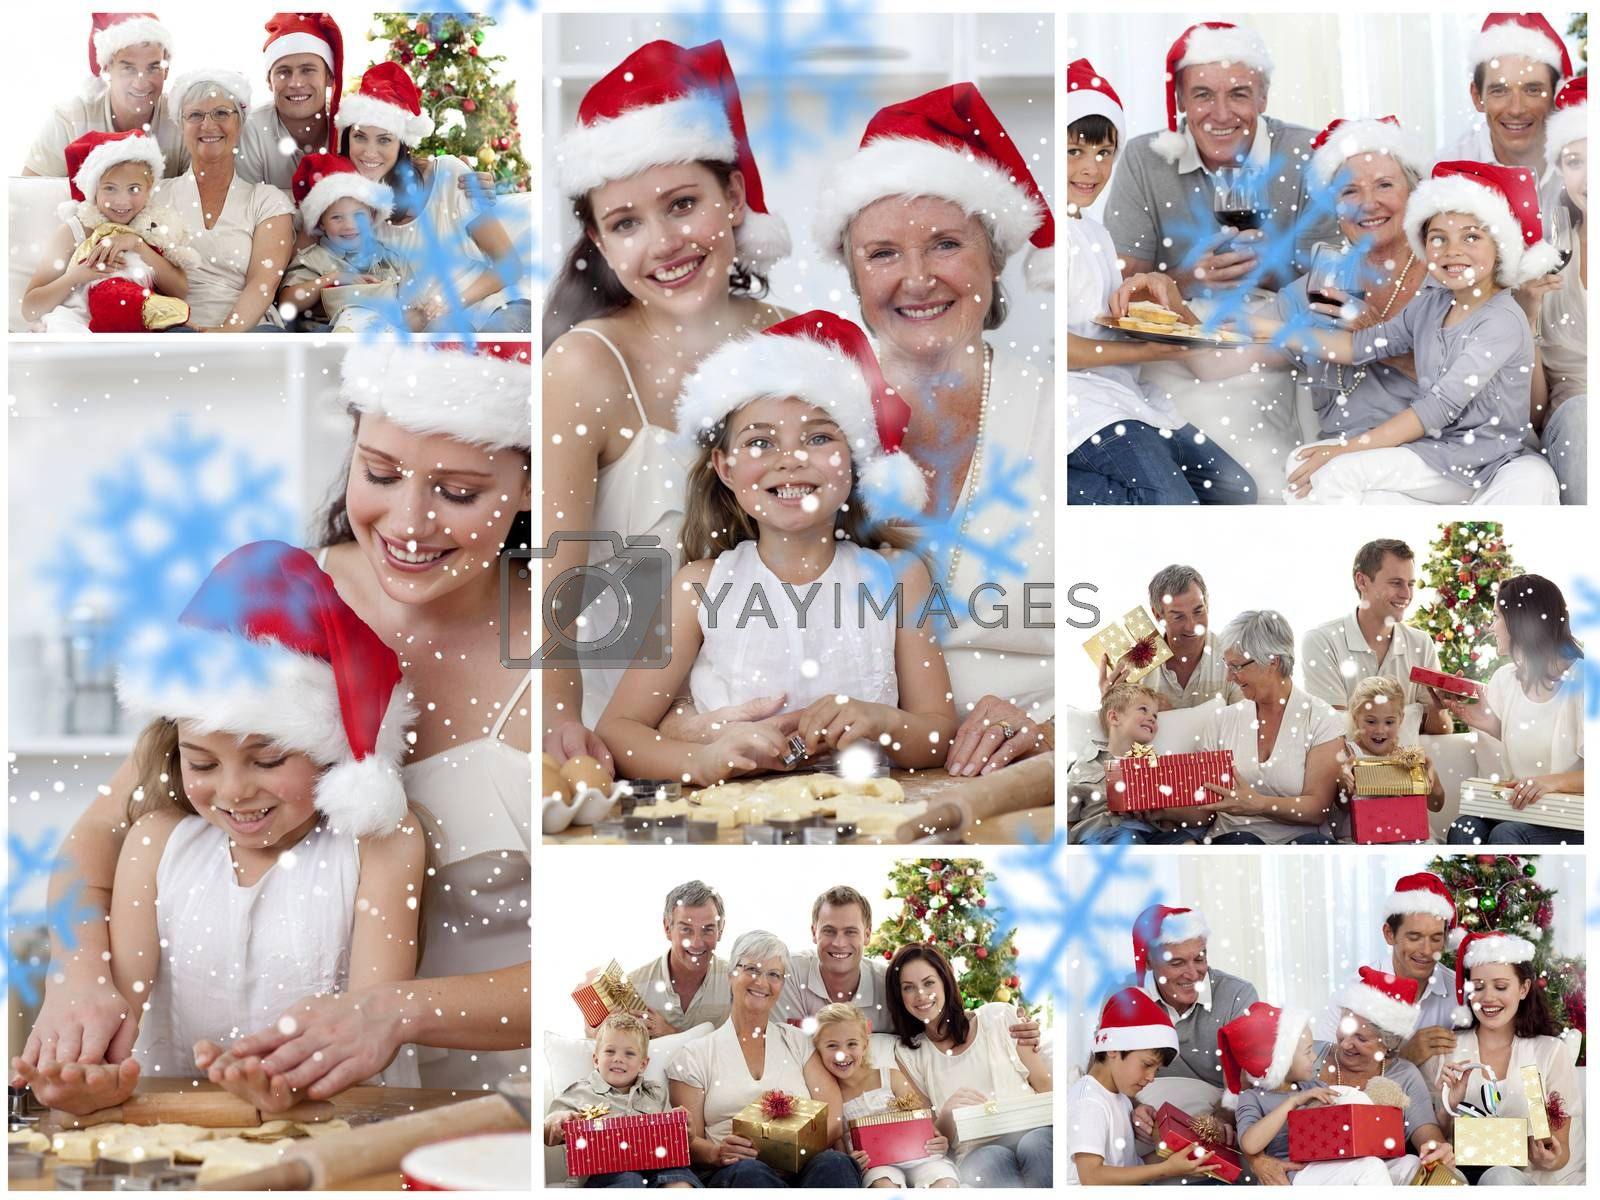 Collage of families enjoying celebration moments together at home by Wavebreakmedia